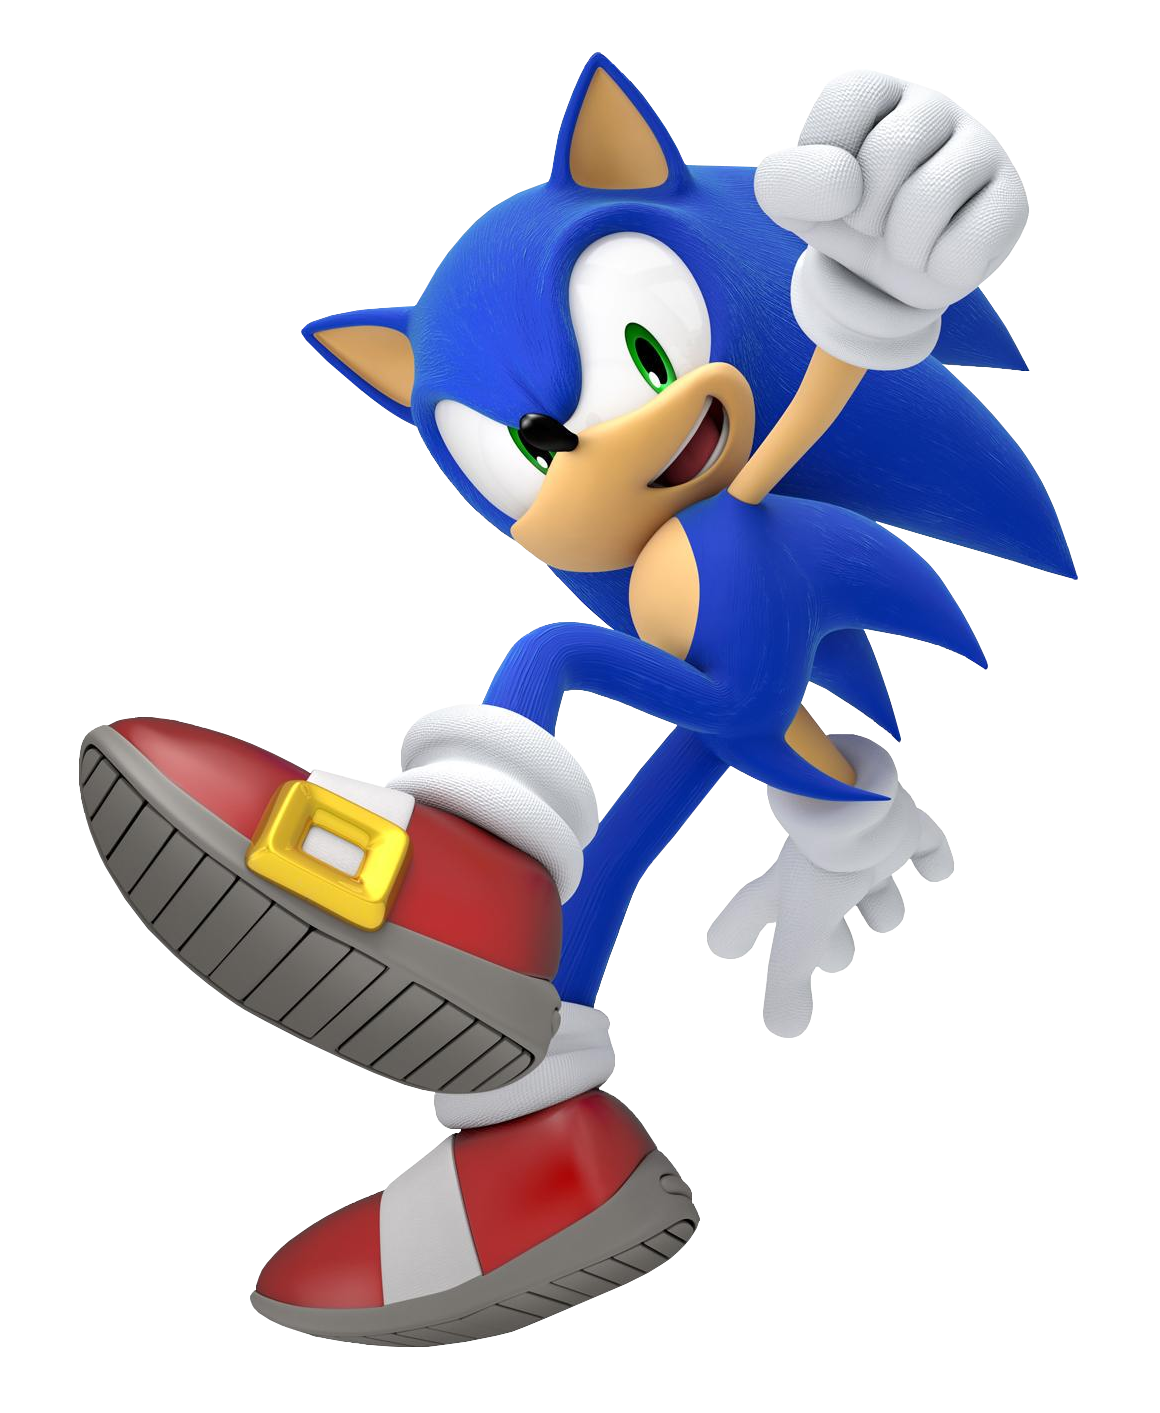 This is a graphic of Sassy Sonic the Hedgehog Galleries